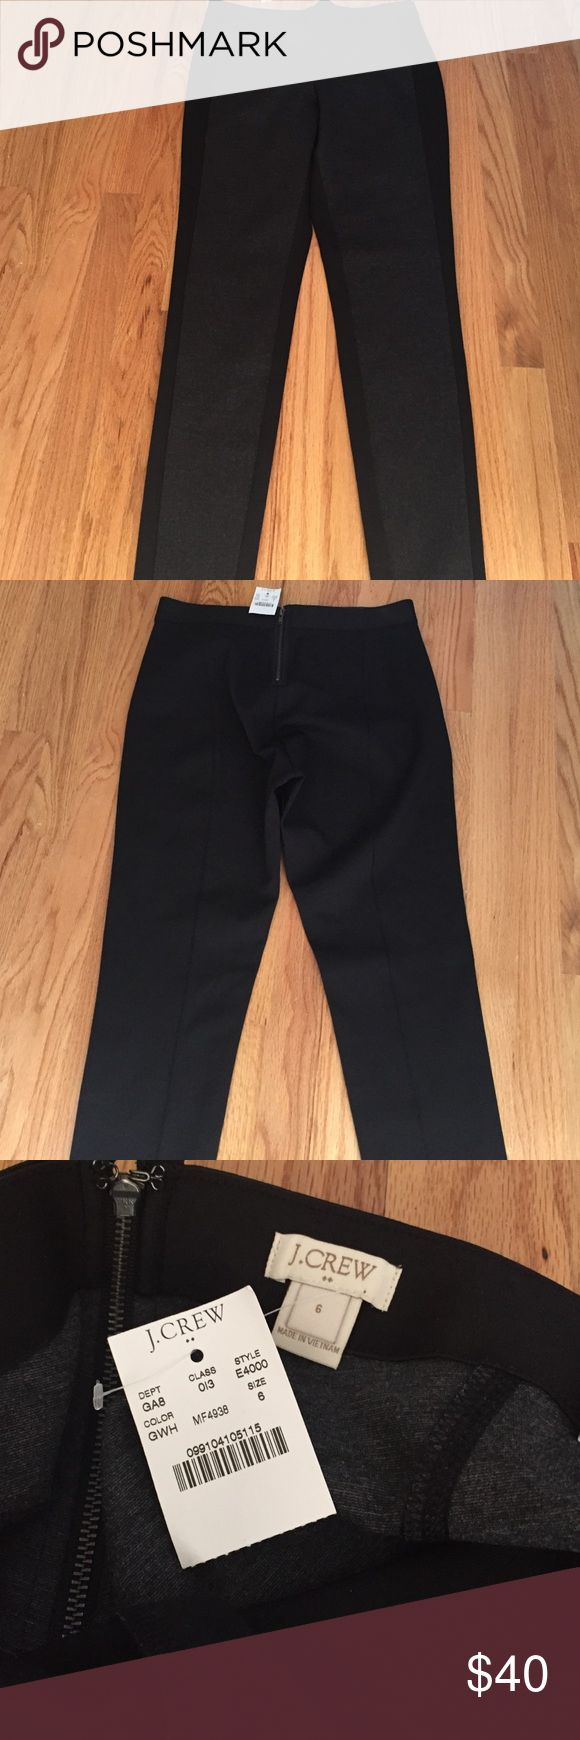 J crew leggings pants 6 Zip in the back. New with tag. Full length. Stretchy. Dark Heather gray front and the rest is black. J. Crew Pants Leggings